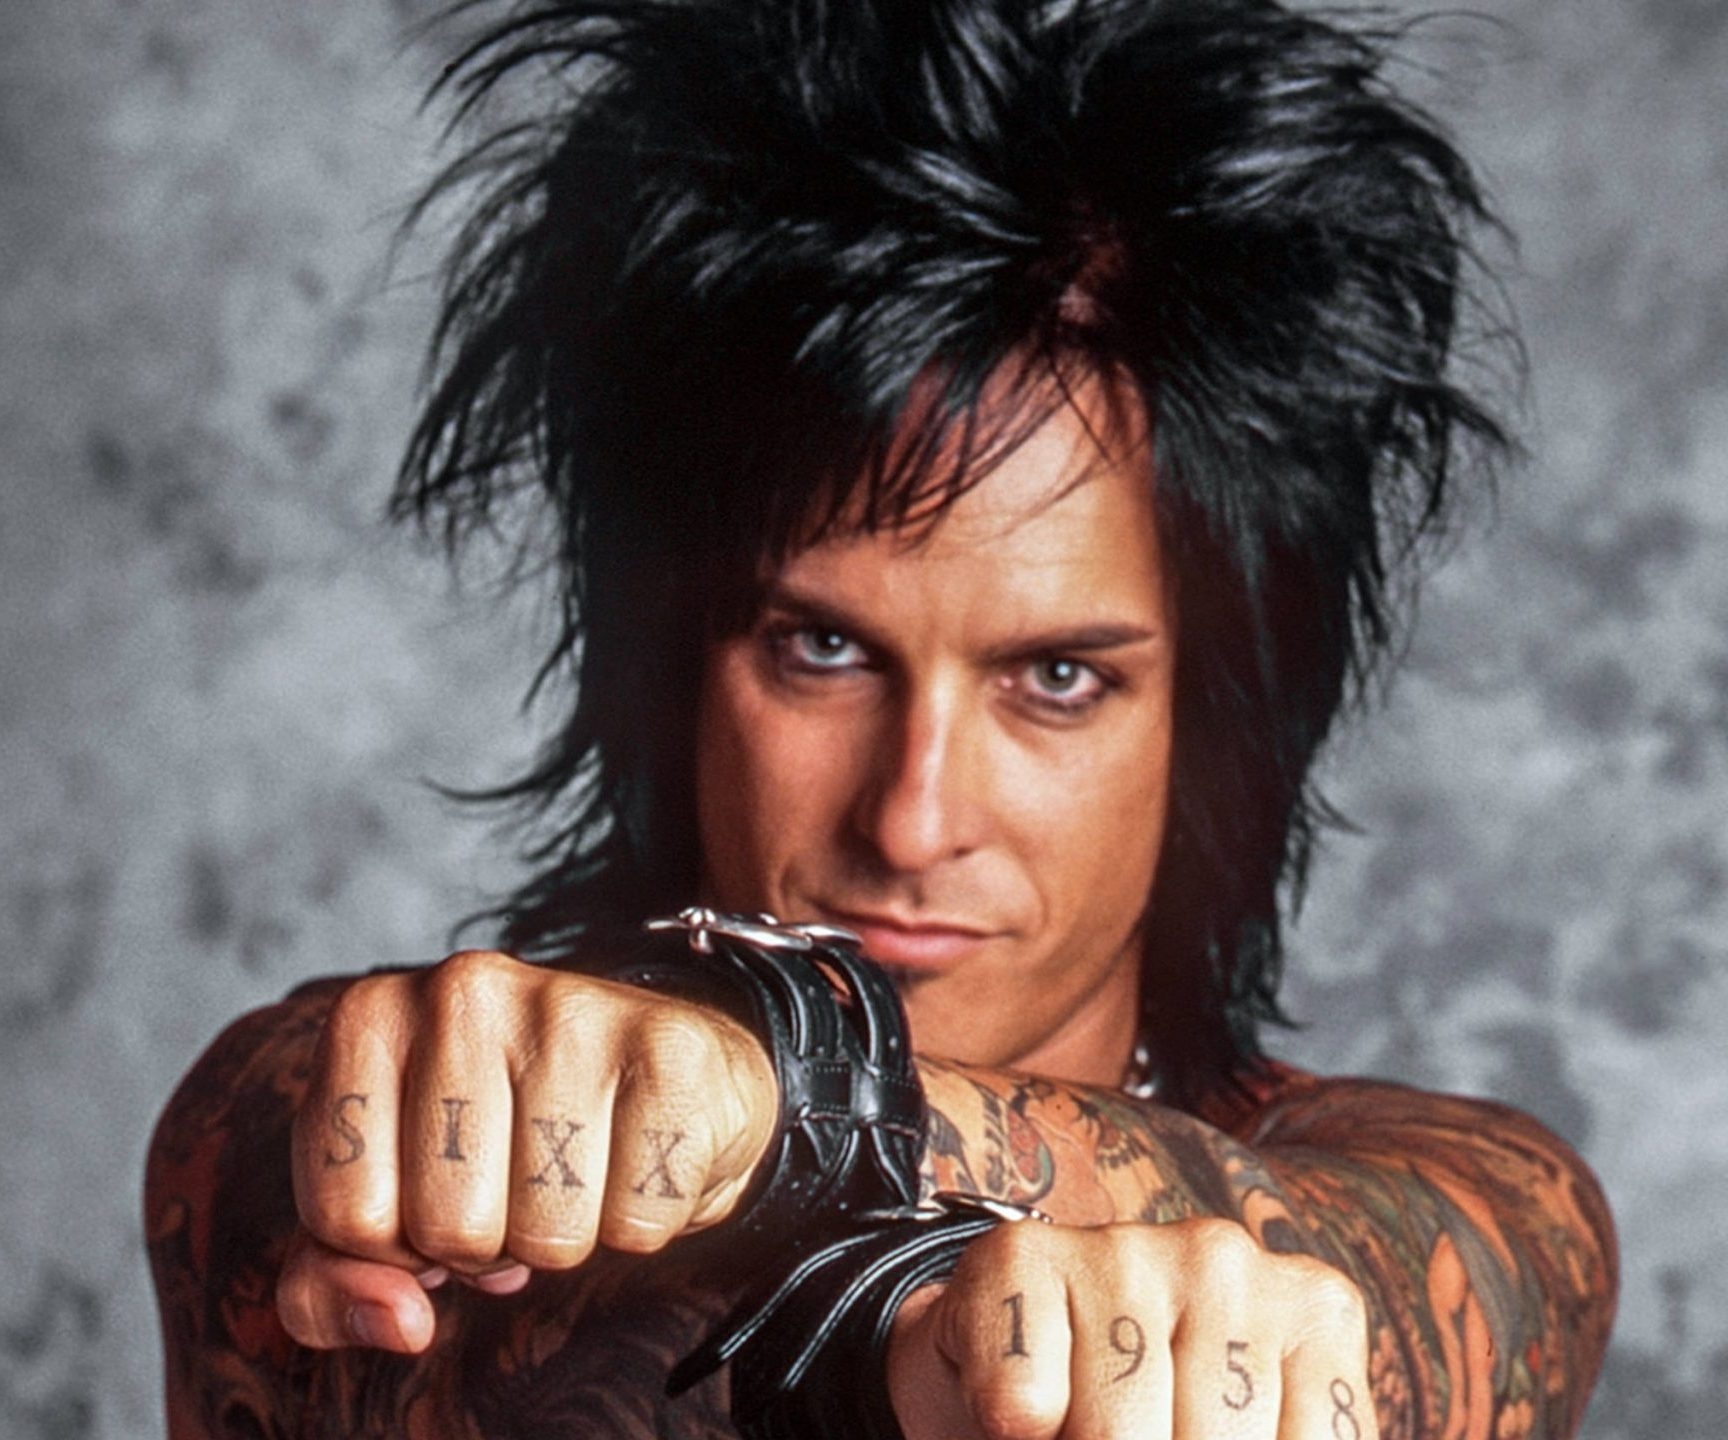 103710 scaled e1603726371769 10 Crazy Facts About Mötley Crüe